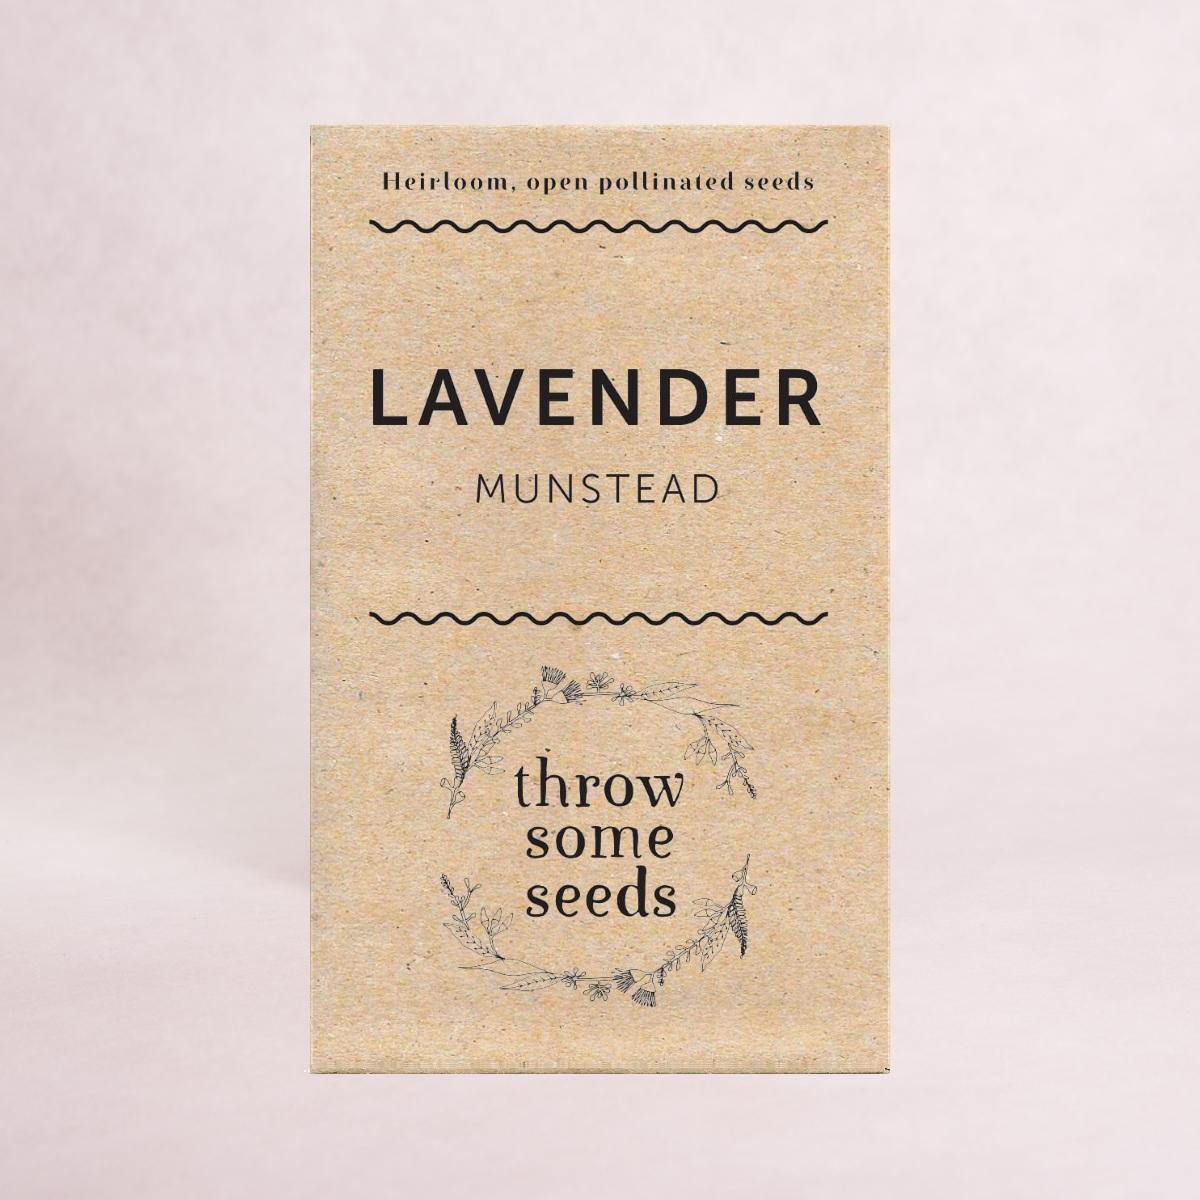 Lavender (Munstead) Seeds - Seeds - Throw Some Seeds - Australian gardening gifts and eco products online!